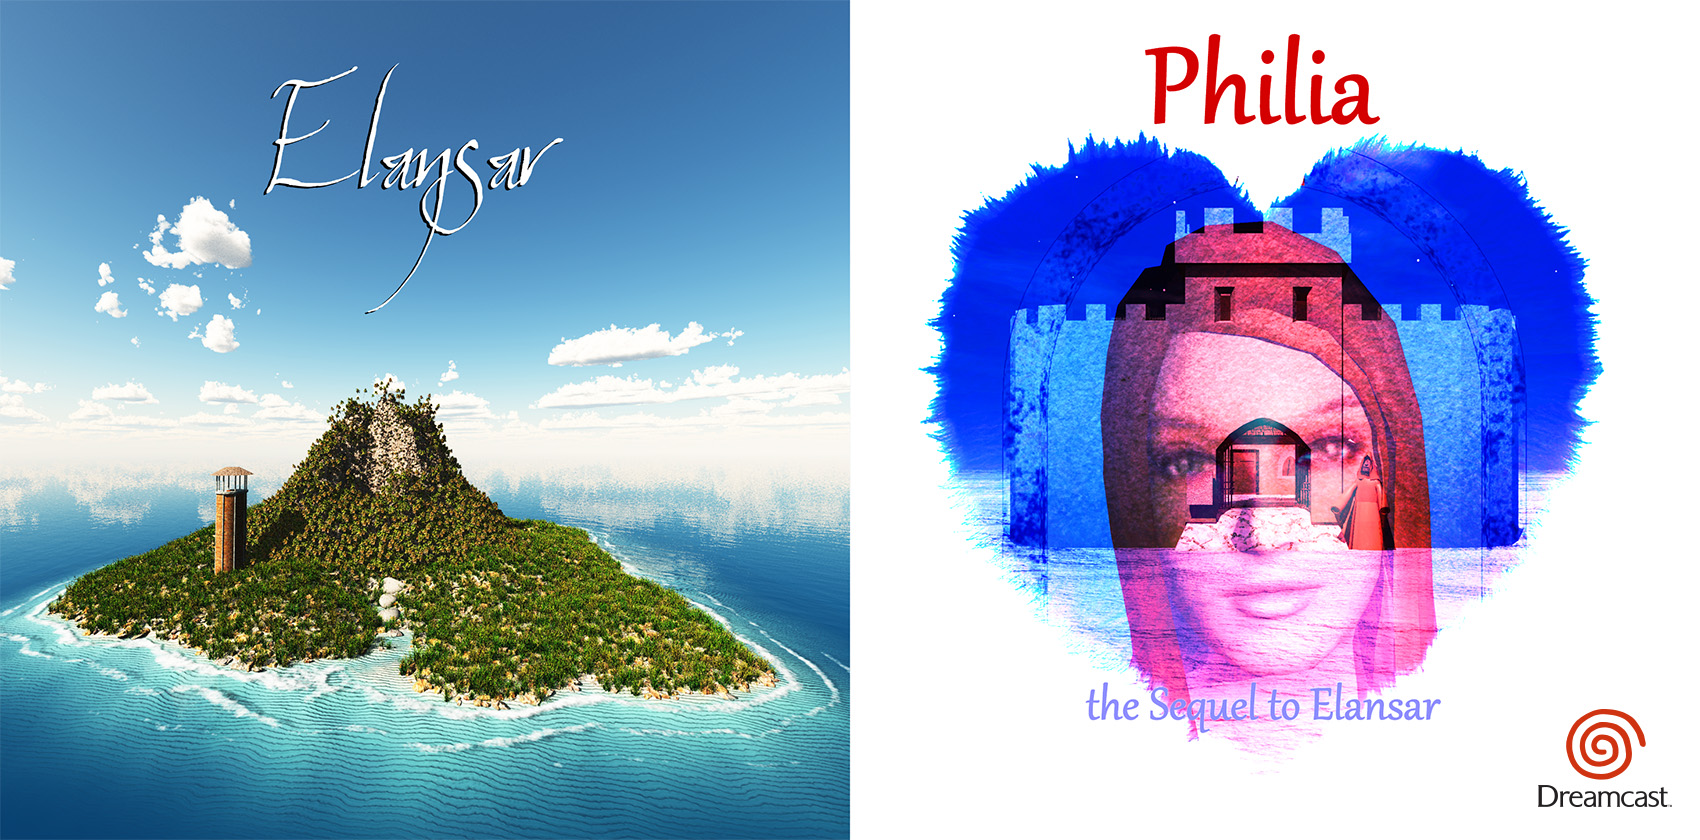 Photo of Hucast's Dreamcast games, Elansar and Philia, are now available for purchase